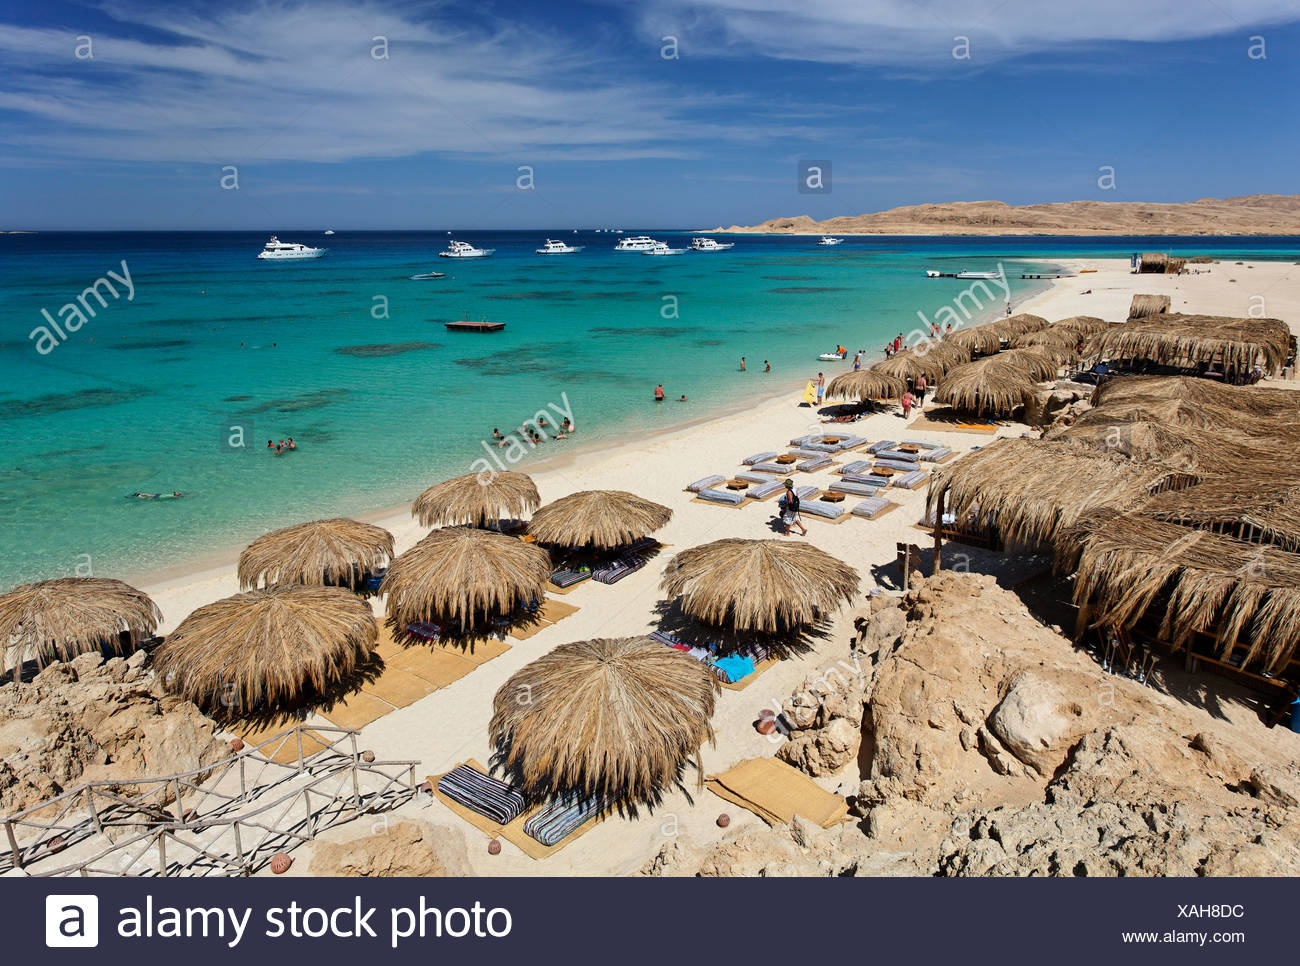 Beach, parasols, lagoon, swimmers, people, ships, Beach Mahmya, beach, Giftun Island, Hurghada, Egypt, Africa, Red Sea - Stock Image